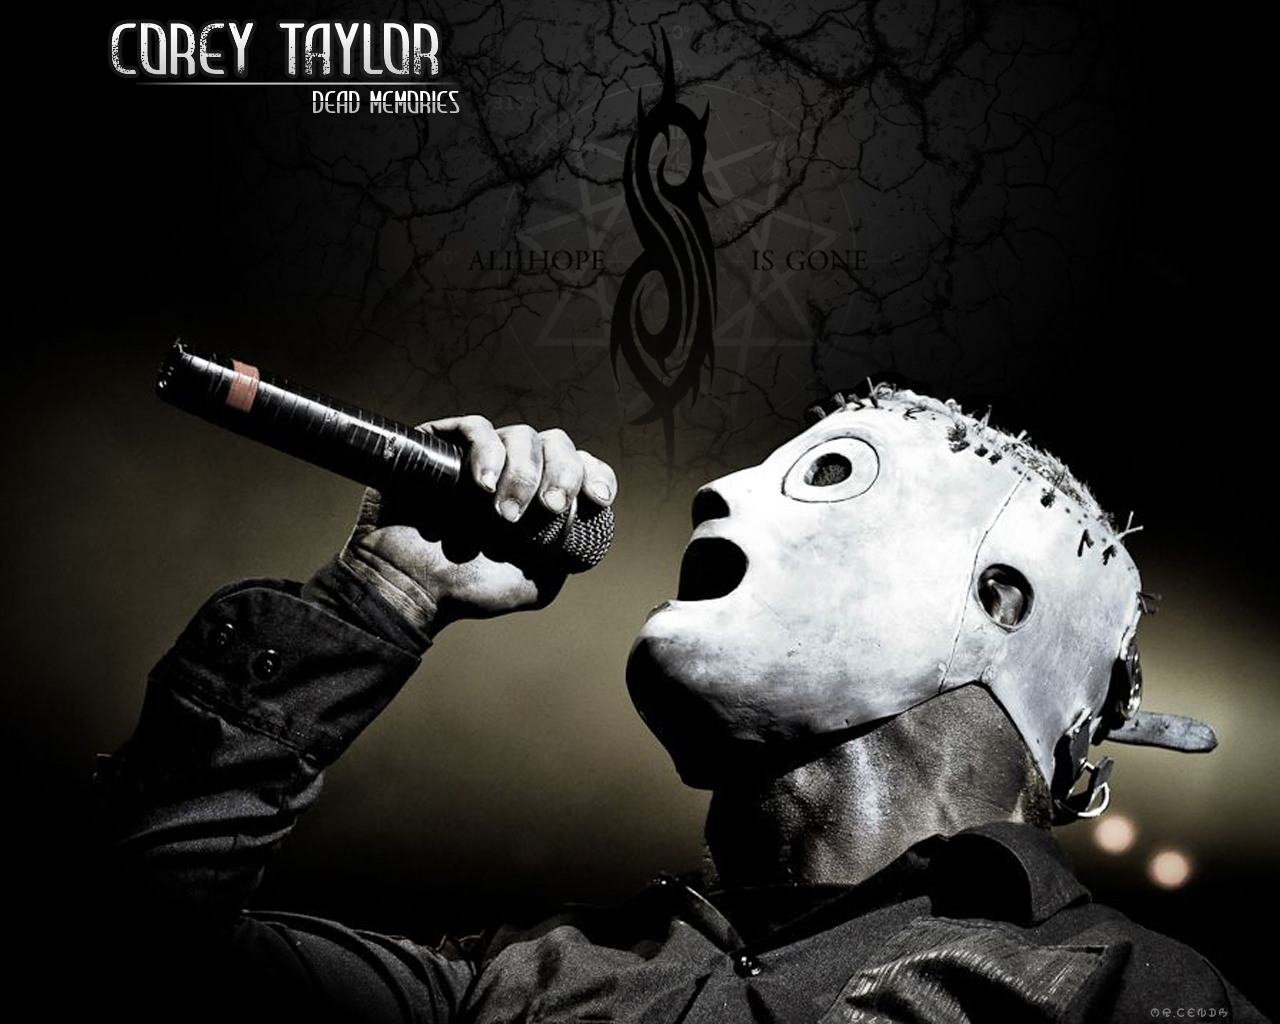 COREY TAYLOR wallpaper metal rock punk sportblogcz 1280x1024